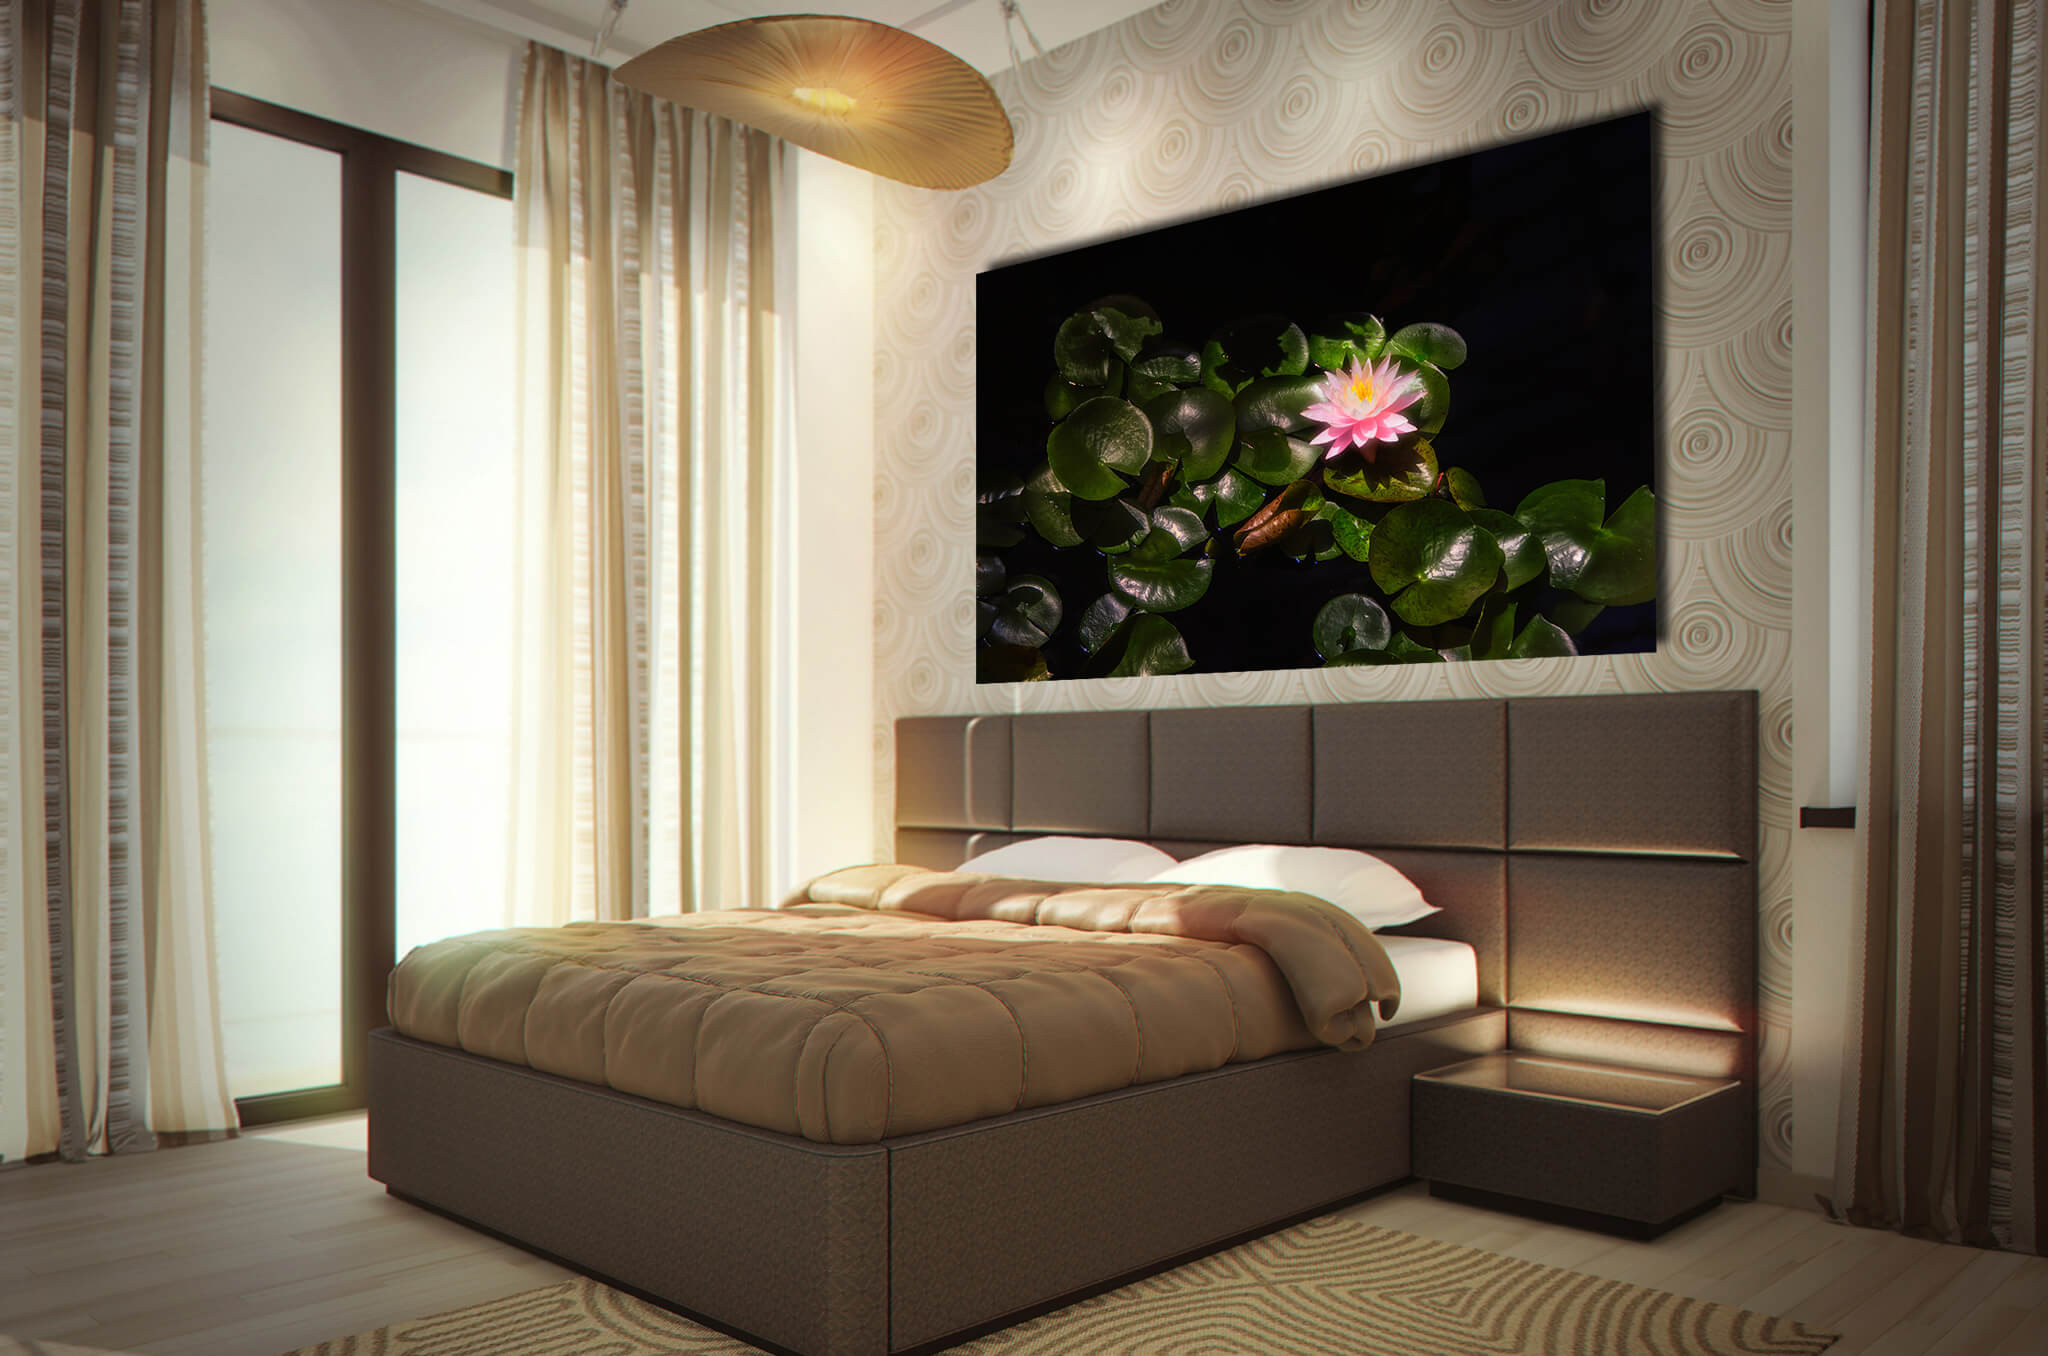 Best ideas about Wall Art For Bedroom . Save or Pin Bedroom Wall Art Art Ideas for Bedroom Franklin Arts Now.